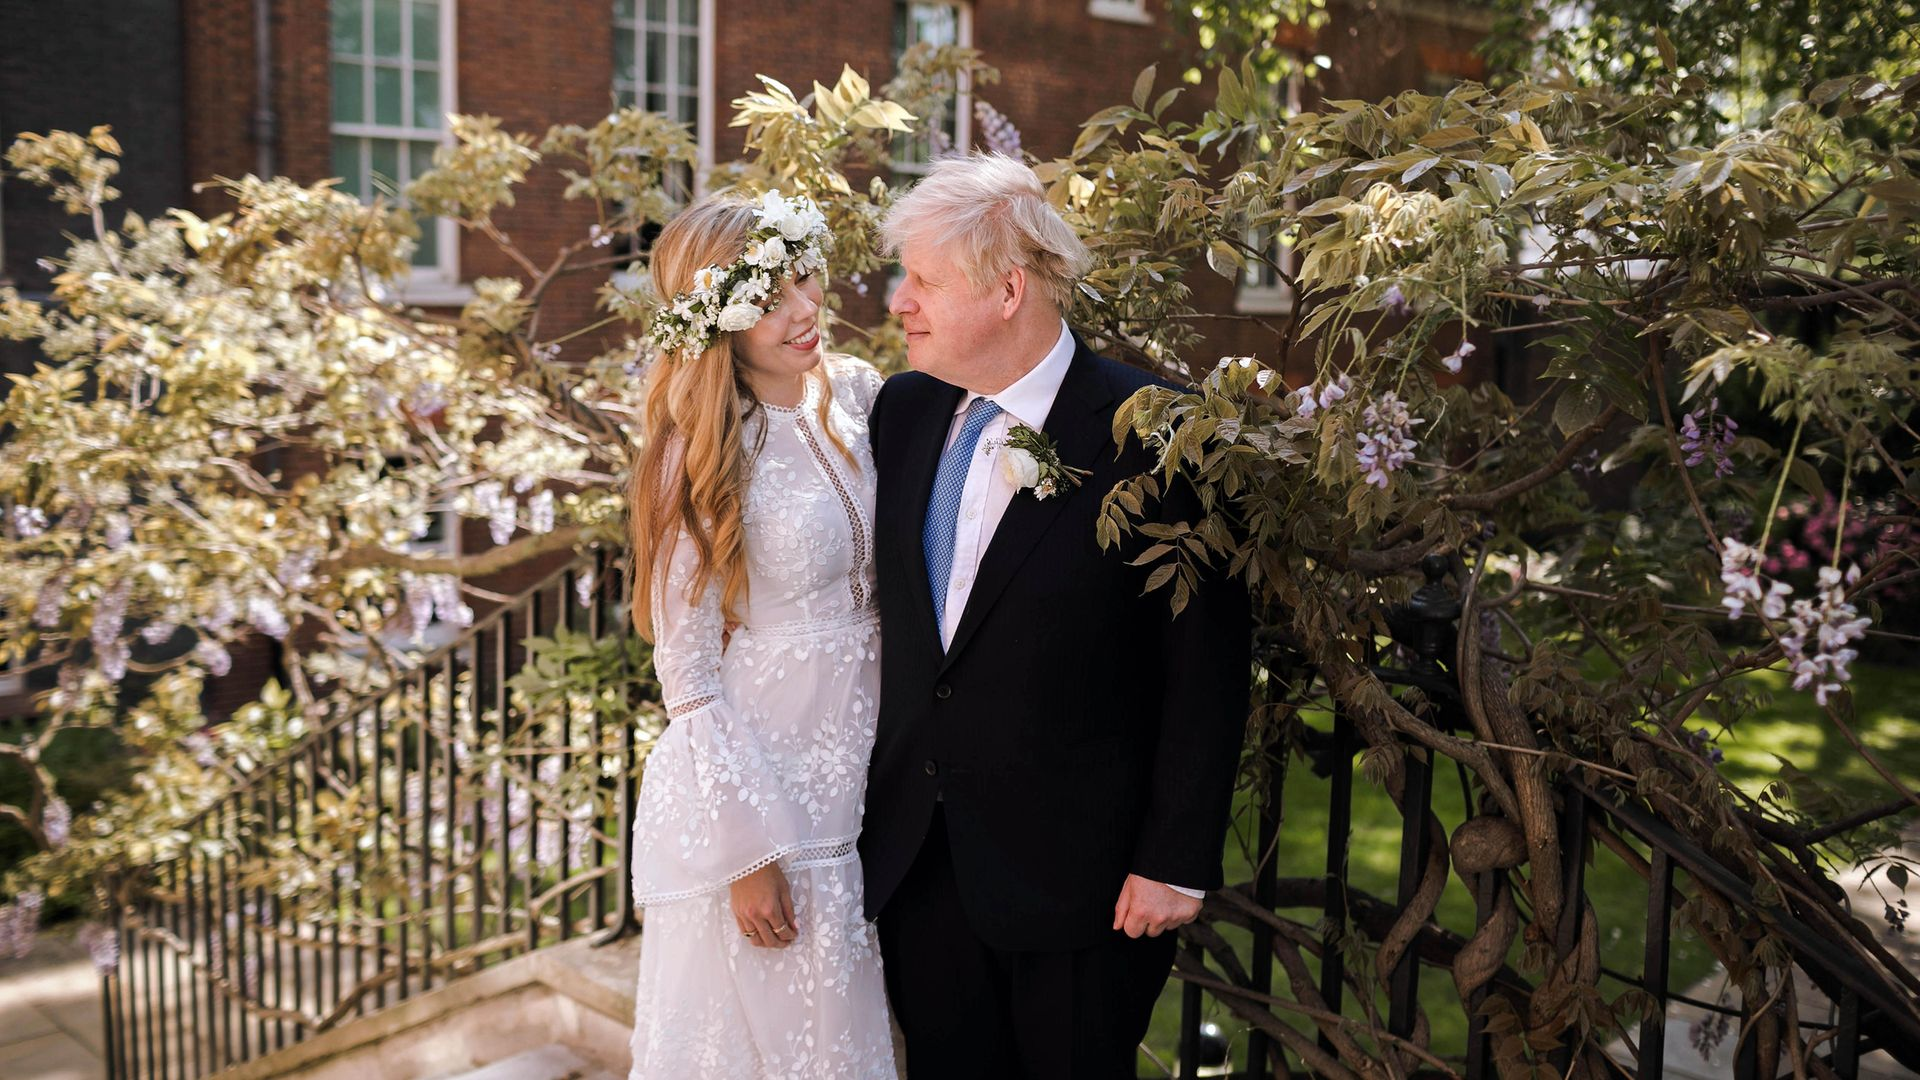 Prime Minister Boris Johnson and Carrie Johnson in the garden of 10 Downing Street after their wedding - Credit: PA